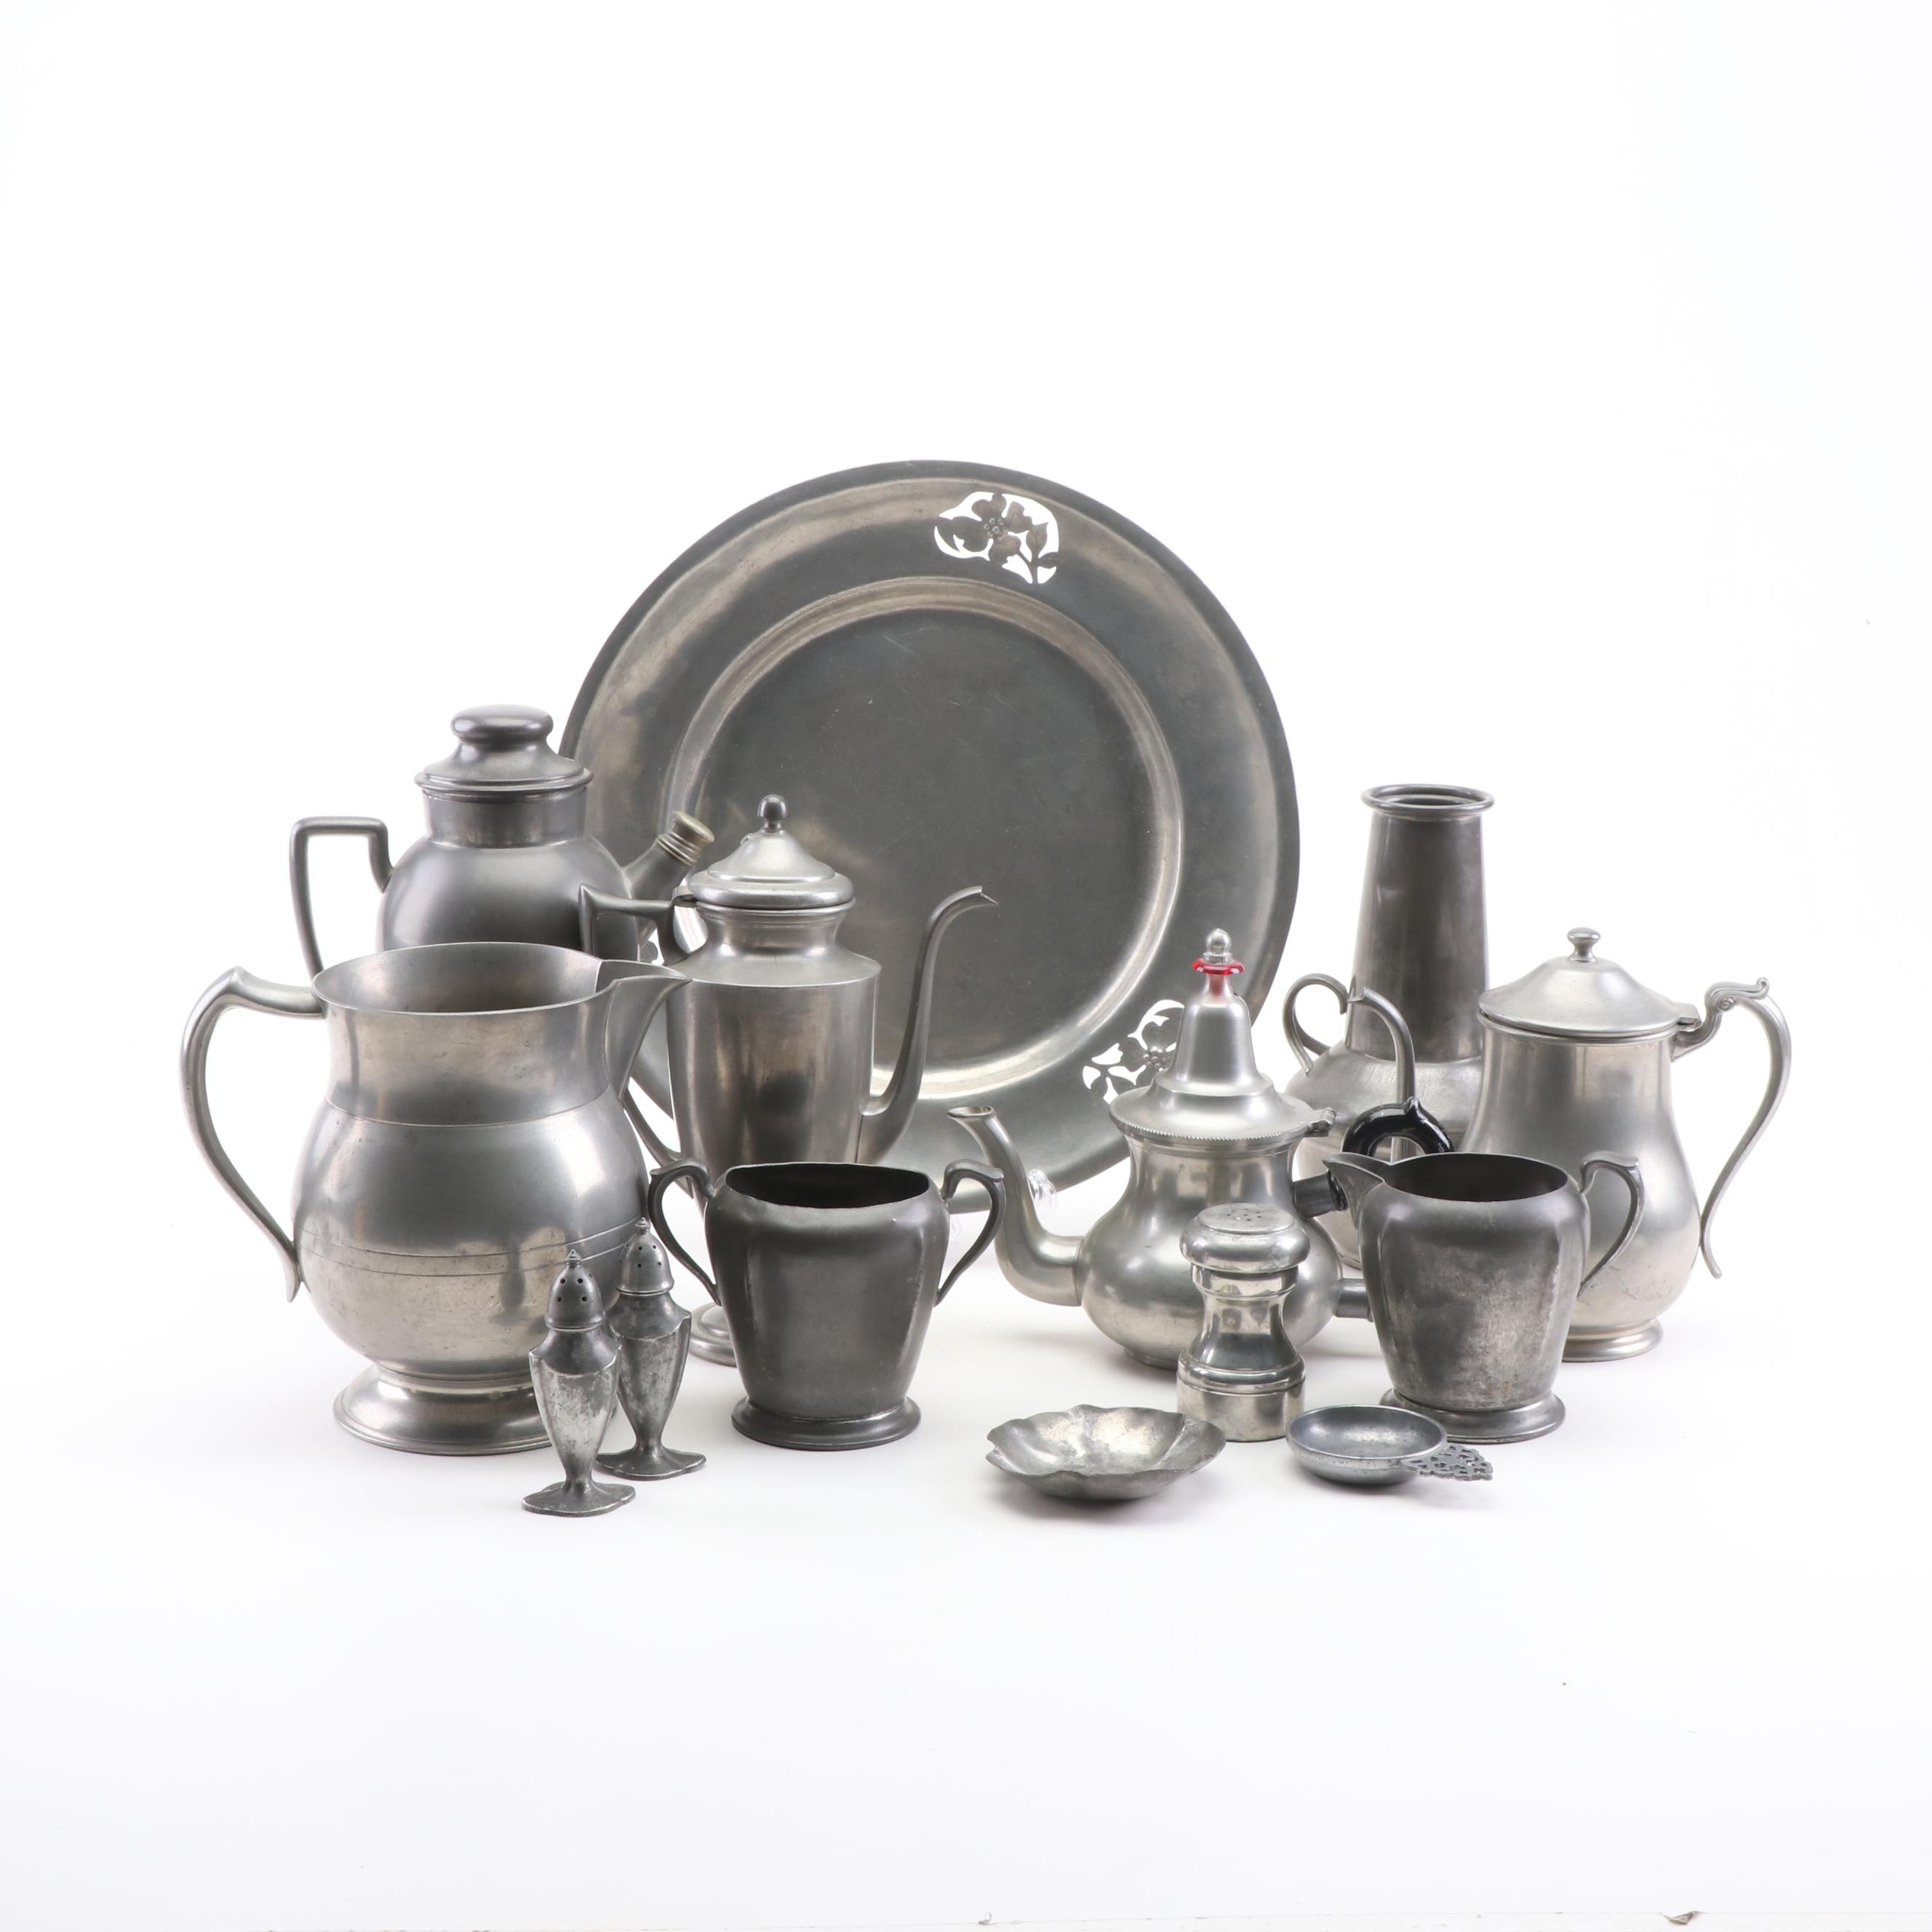 Pewter Serveware Collection including Concord, Old Colonial and More